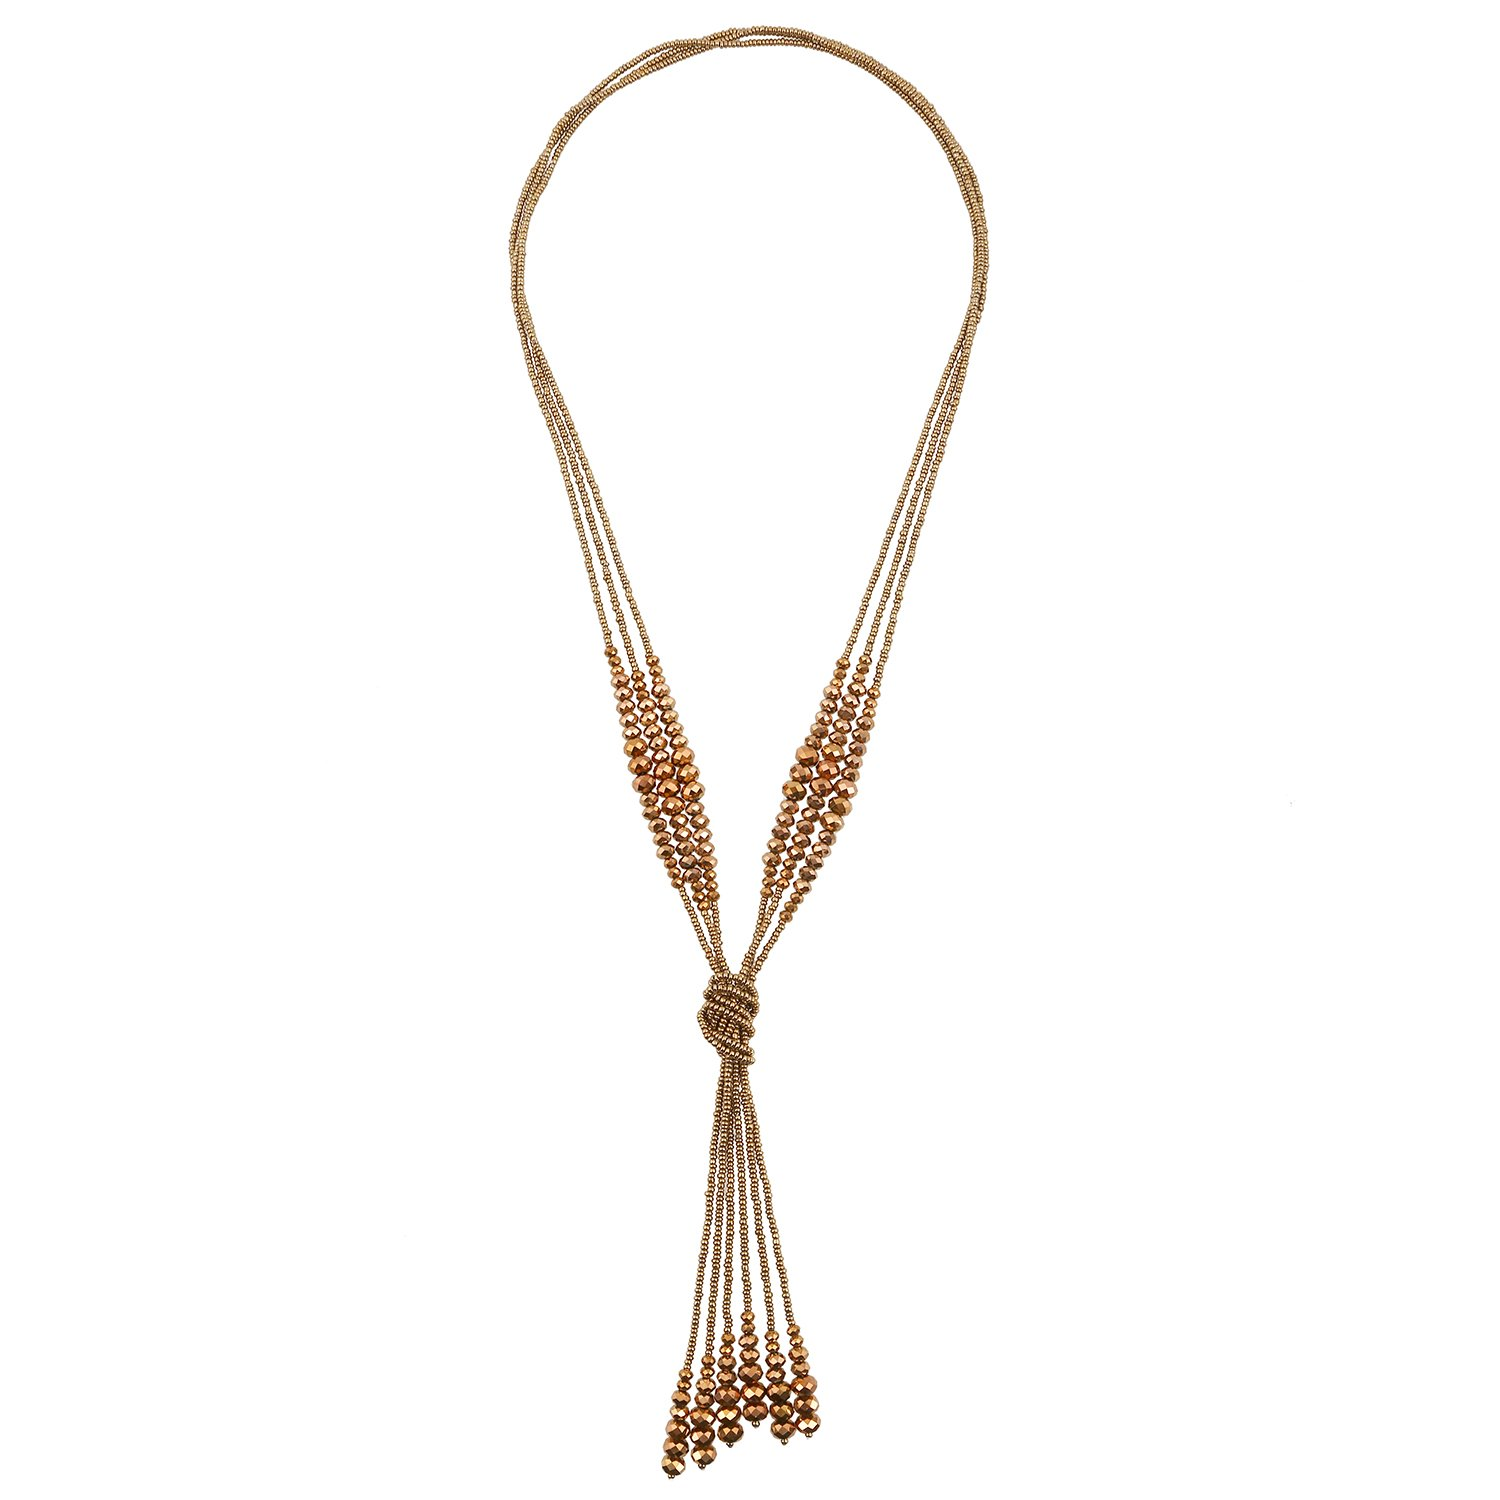 D EXCEED Women's Tassel Pendant Necklace Fashion lovely Knotted Glass Beaded Chain Y Necklace Metallic Bronze